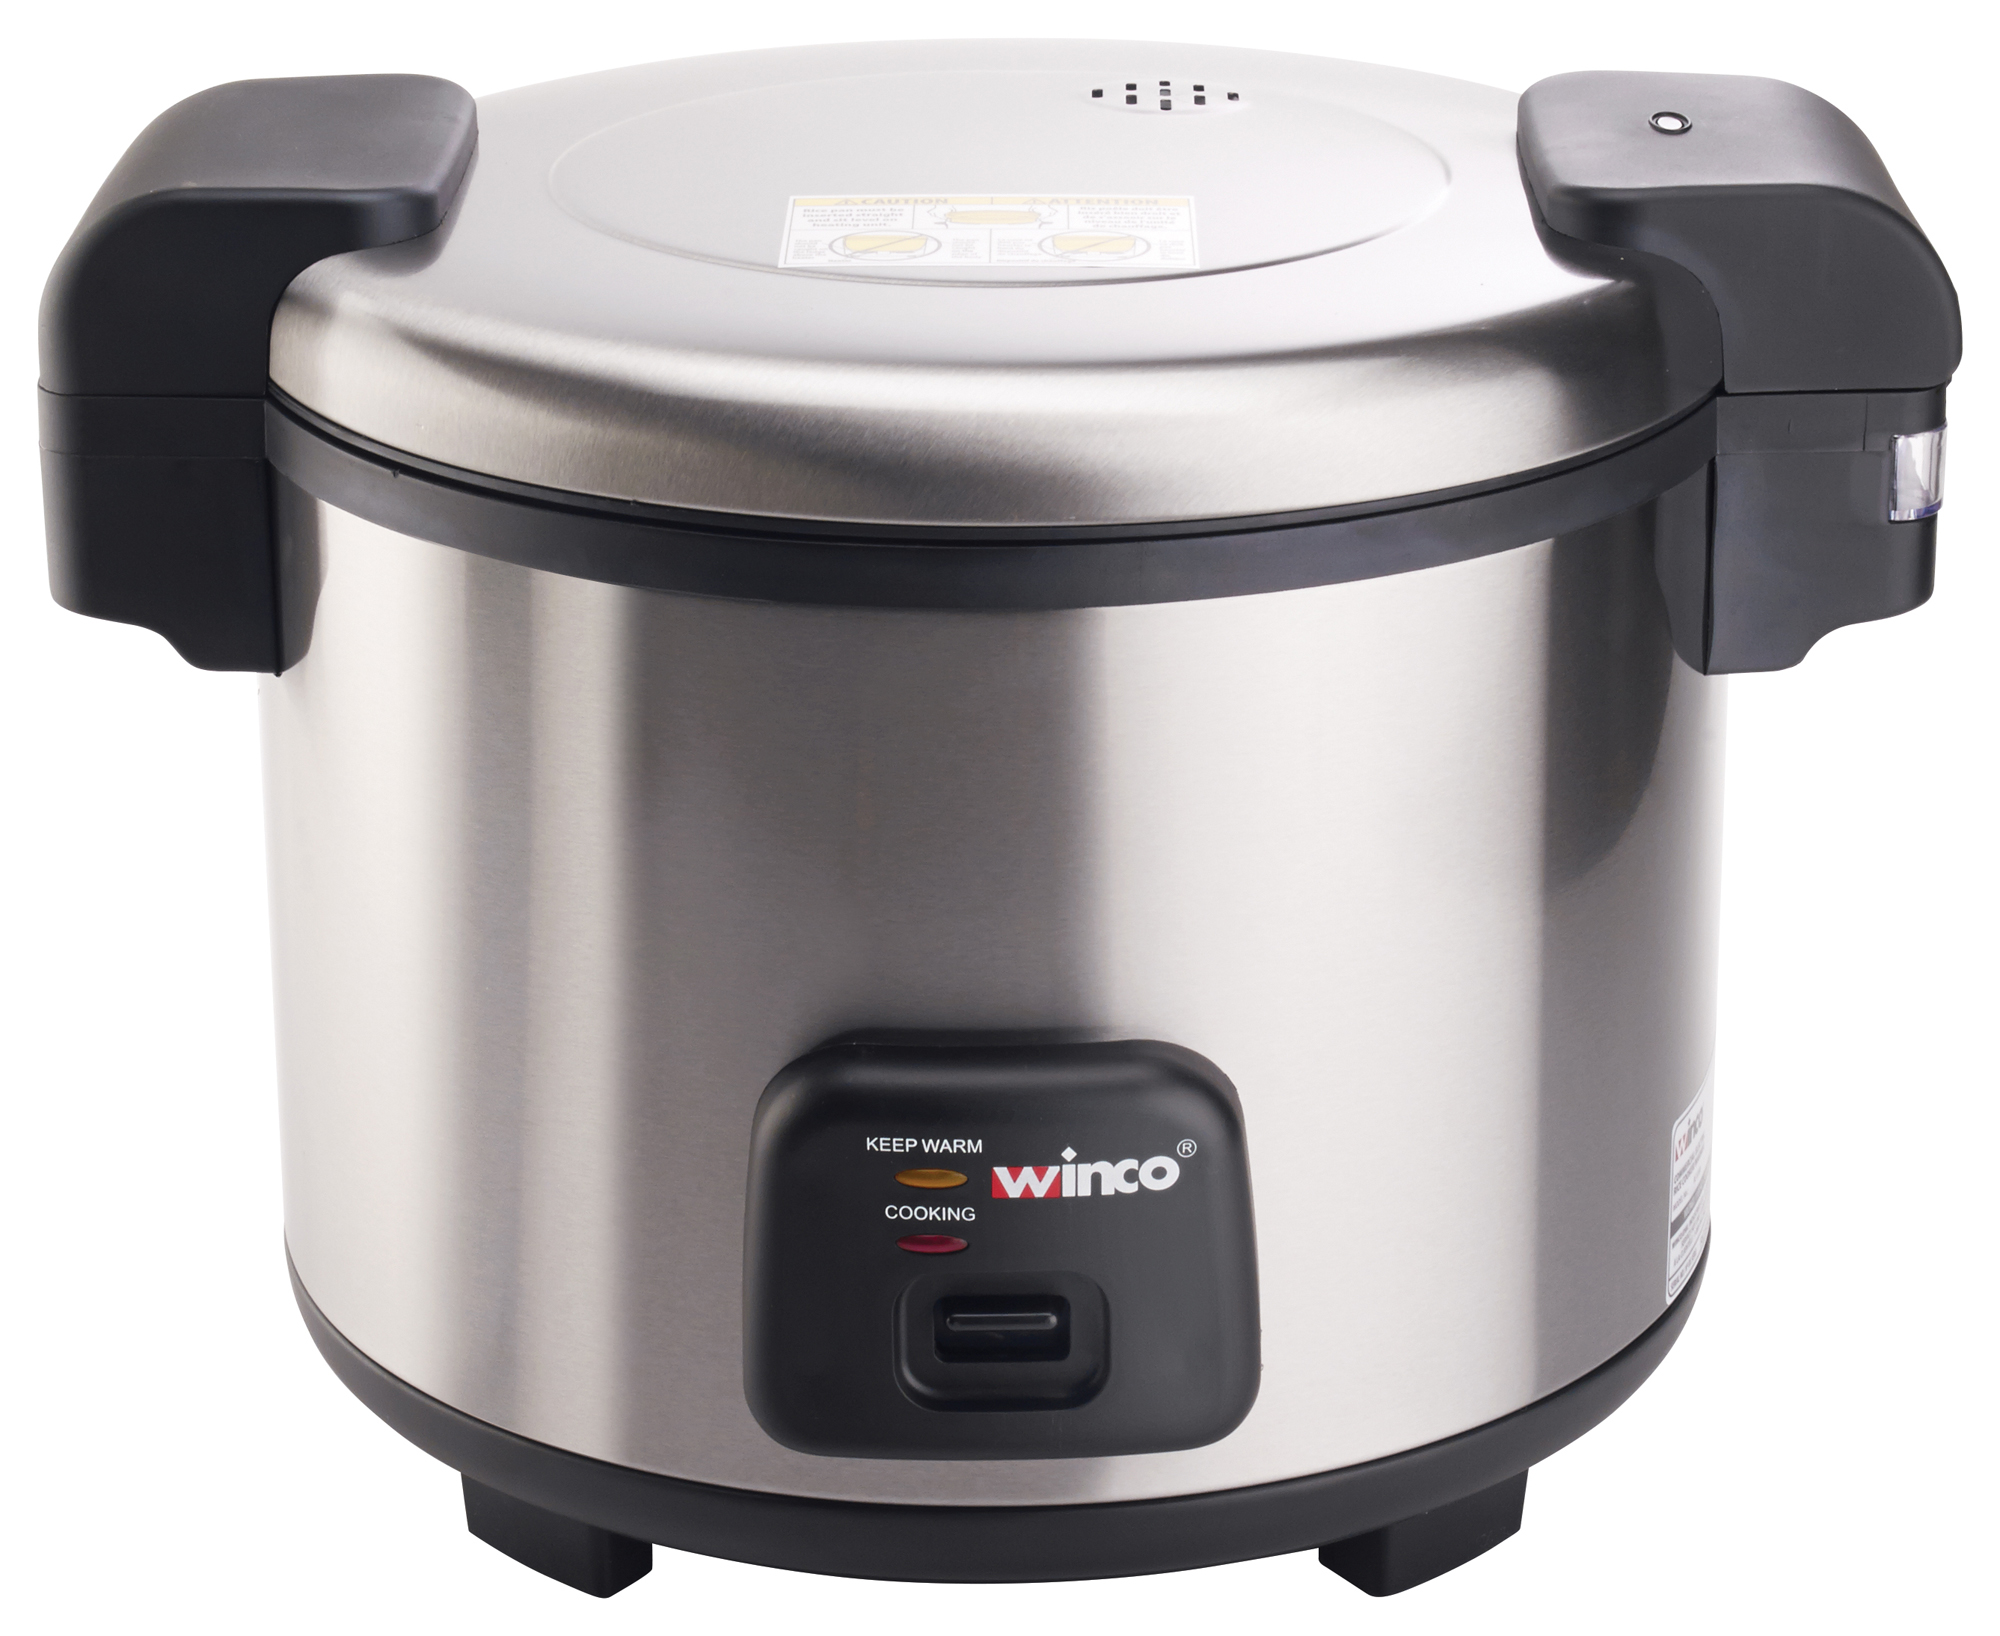 Winco RC-F electric rice cooker / warmers